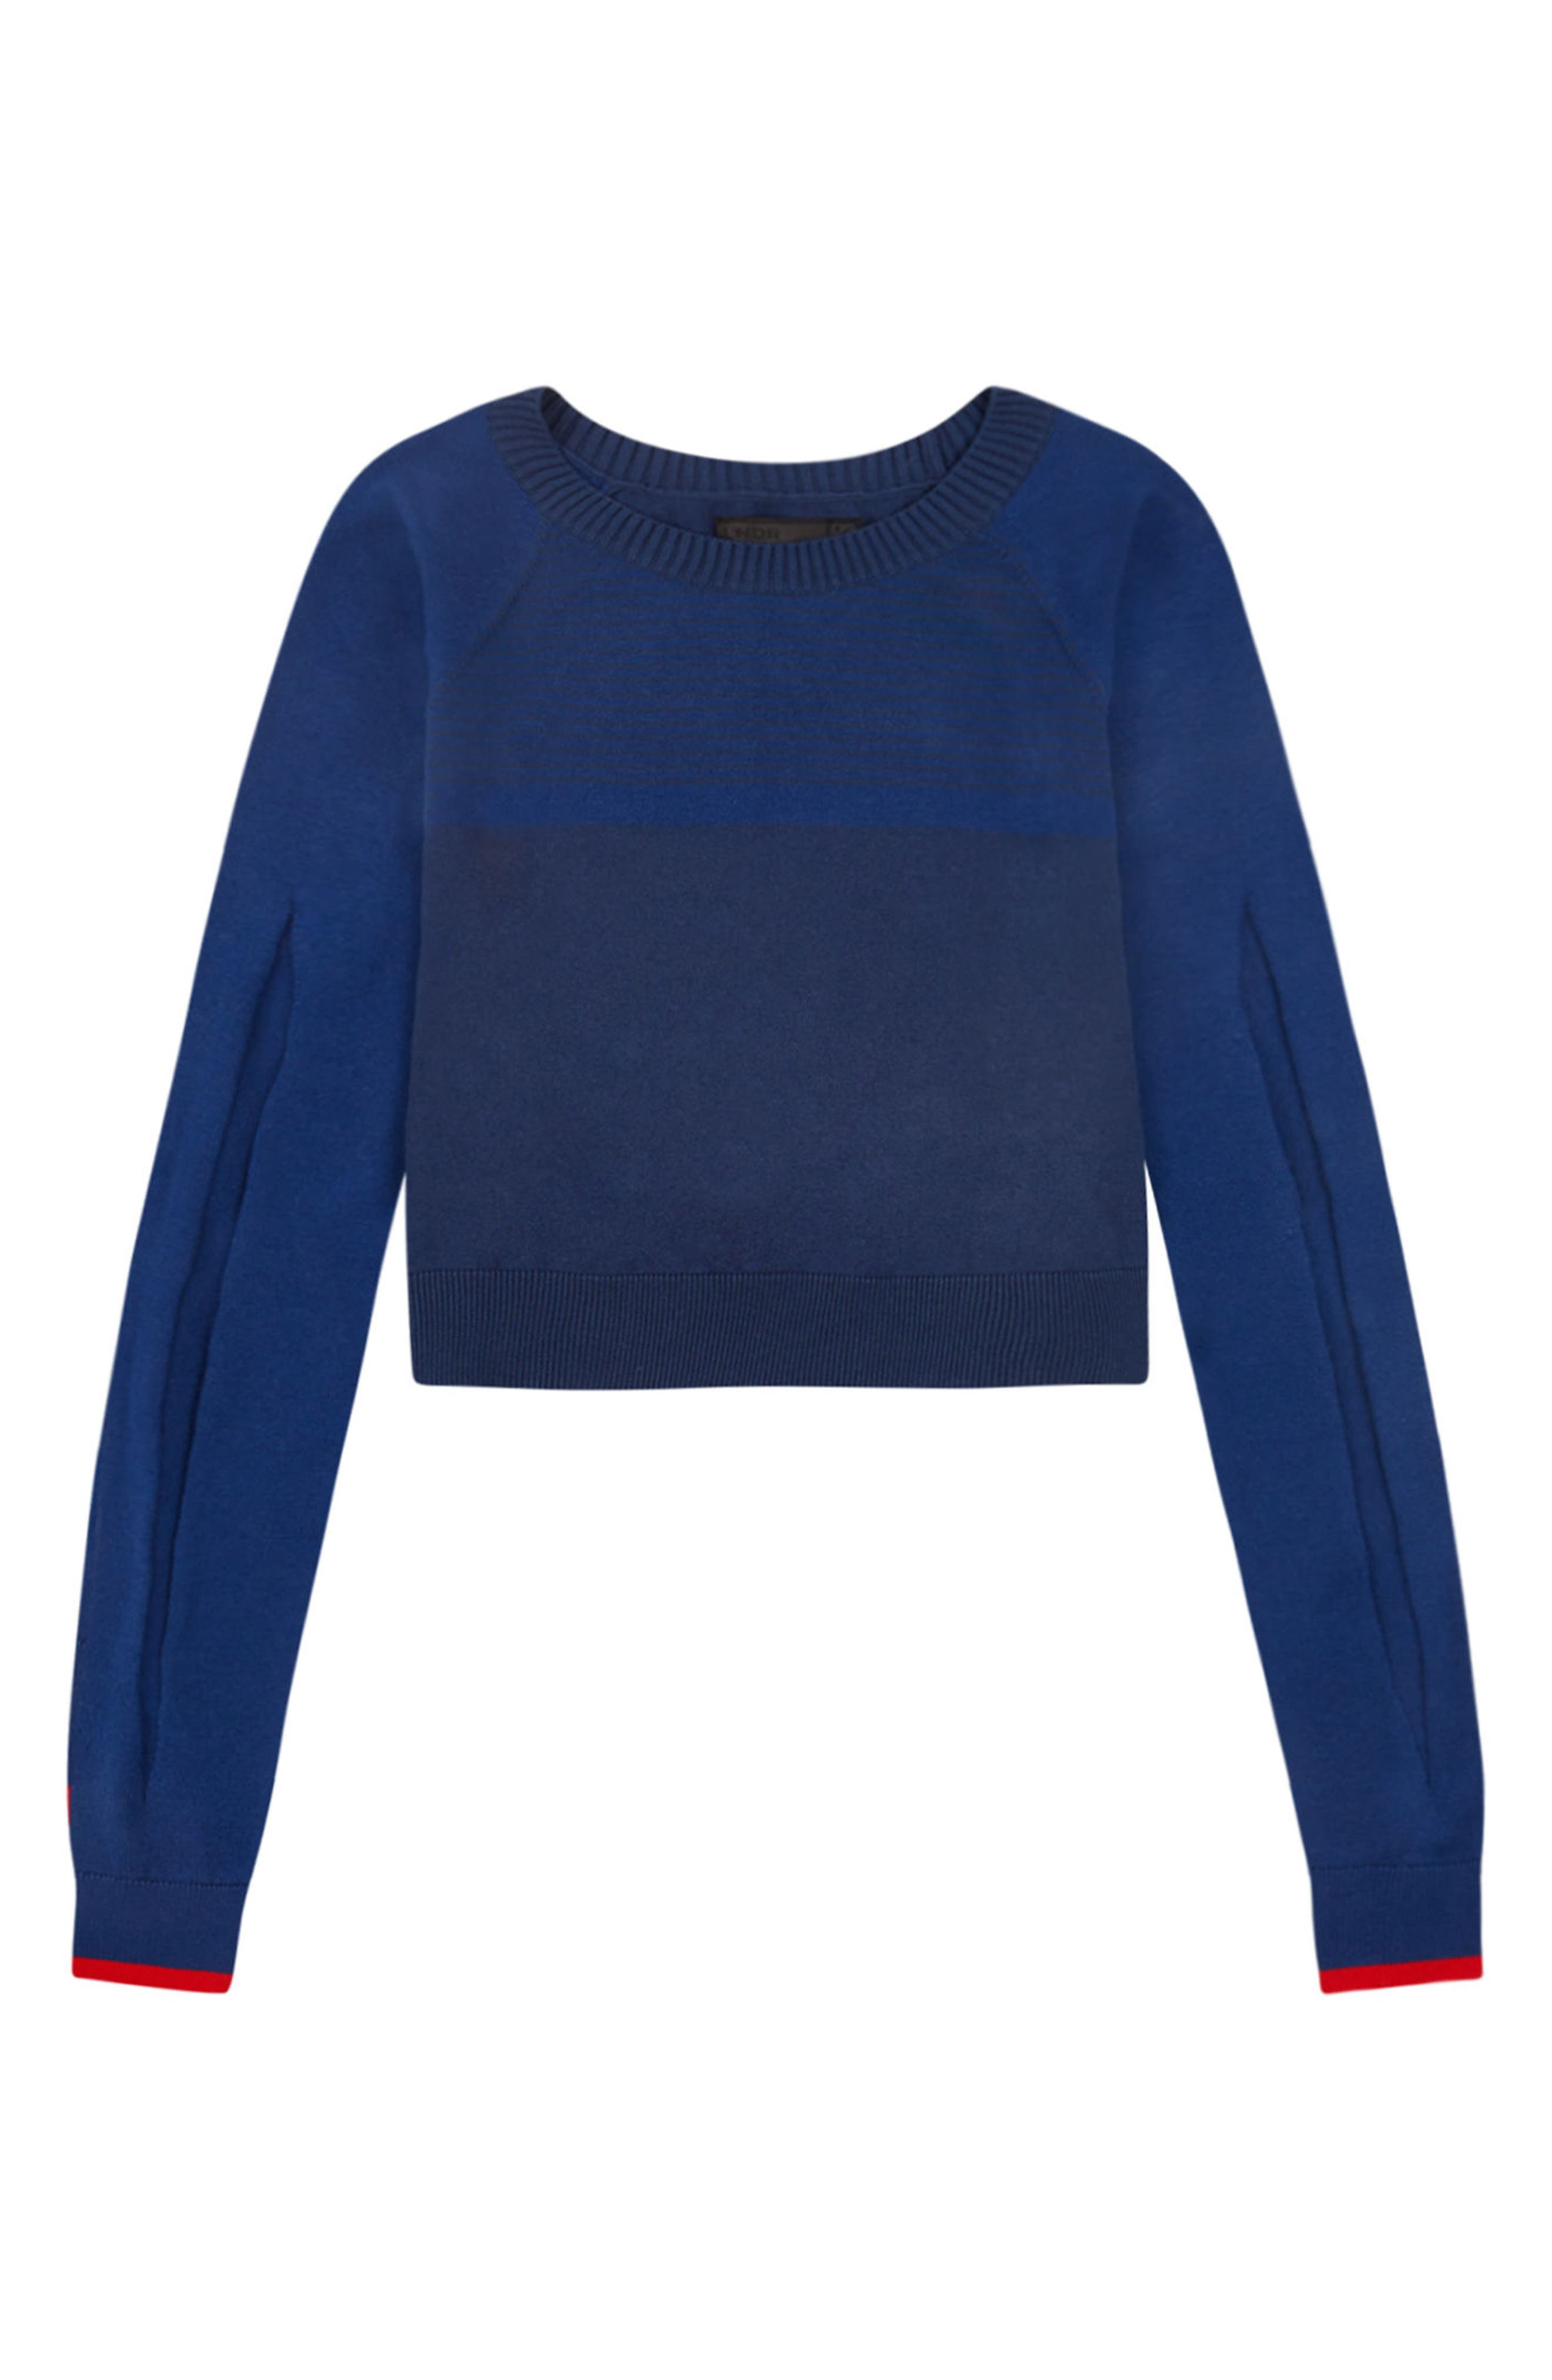 Prism Cropped Sweater,                             Alternate thumbnail 8, color,                             400